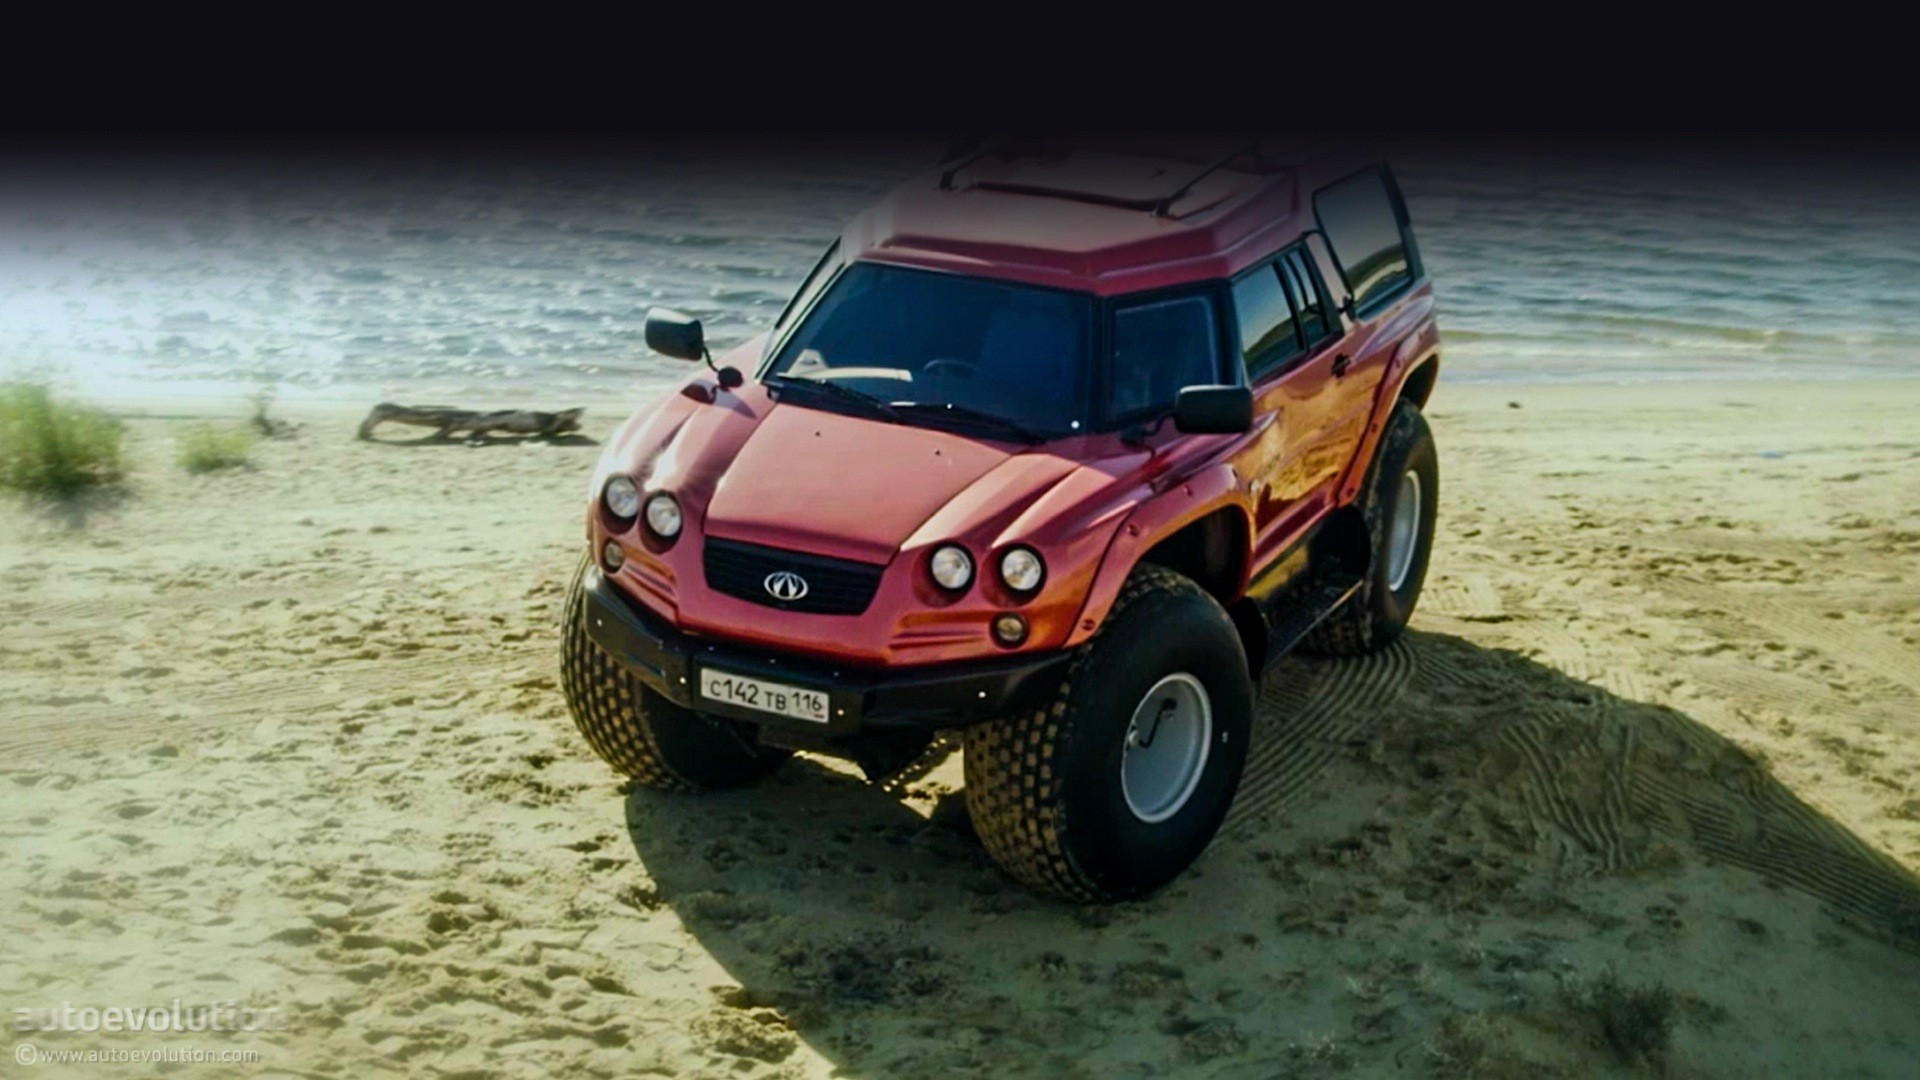 The Viking 29031 Is An Amphibious Monster Truck From Russia